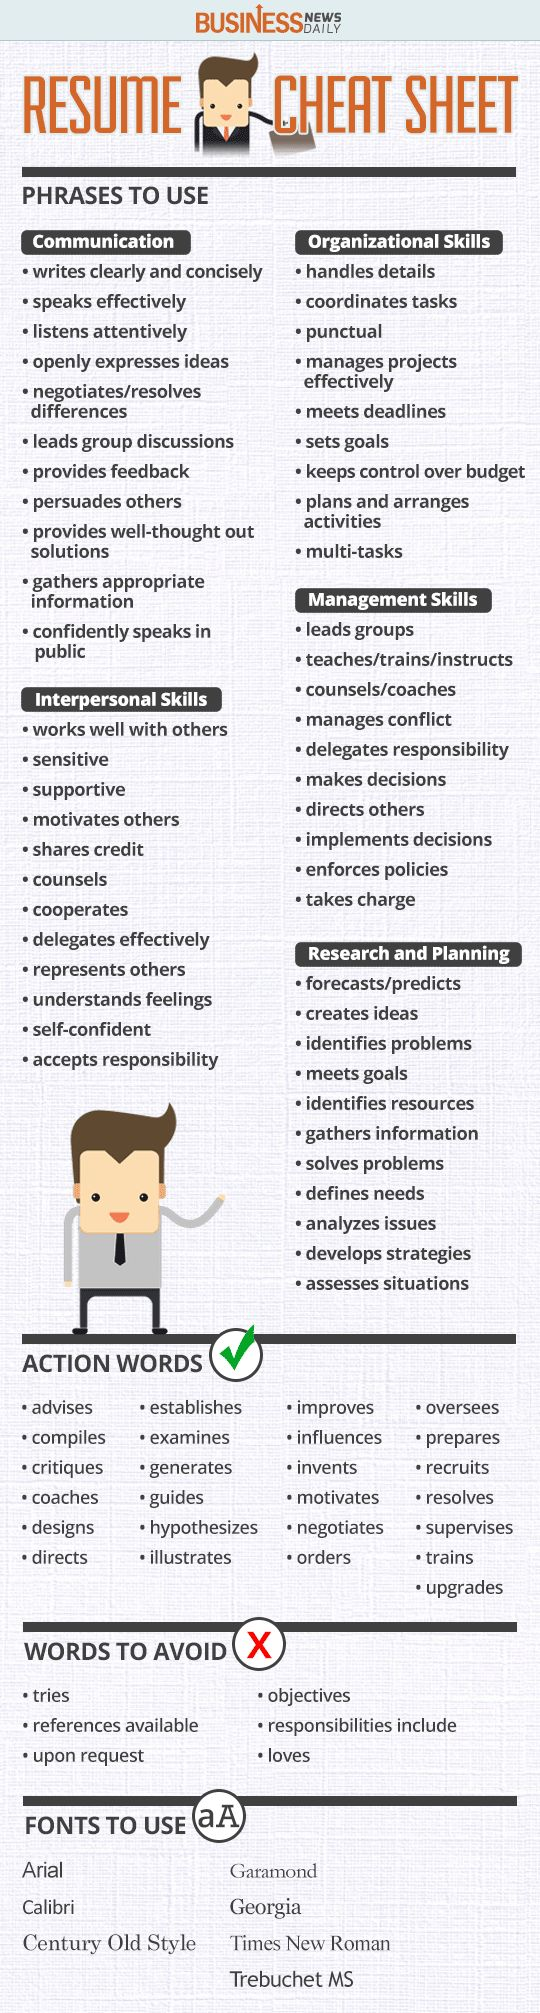 Opposenewapstandardsus  Picturesque  Ideas About Resume On Pinterest  Cv Format Resume Cv And  With Likable Resume Cheat Sheet Infographic Andrews Almost Done With A Complete Unit On Employment Which With Agreeable What To Add To A Resume Also Print Resume For Free In Addition Vba Resume And Entry Level Qa Tester Resume As Well As City Manager Resume Additionally Criminal Justice Resume Templates From Pinterestcom With Opposenewapstandardsus  Likable  Ideas About Resume On Pinterest  Cv Format Resume Cv And  With Agreeable Resume Cheat Sheet Infographic Andrews Almost Done With A Complete Unit On Employment Which And Picturesque What To Add To A Resume Also Print Resume For Free In Addition Vba Resume From Pinterestcom